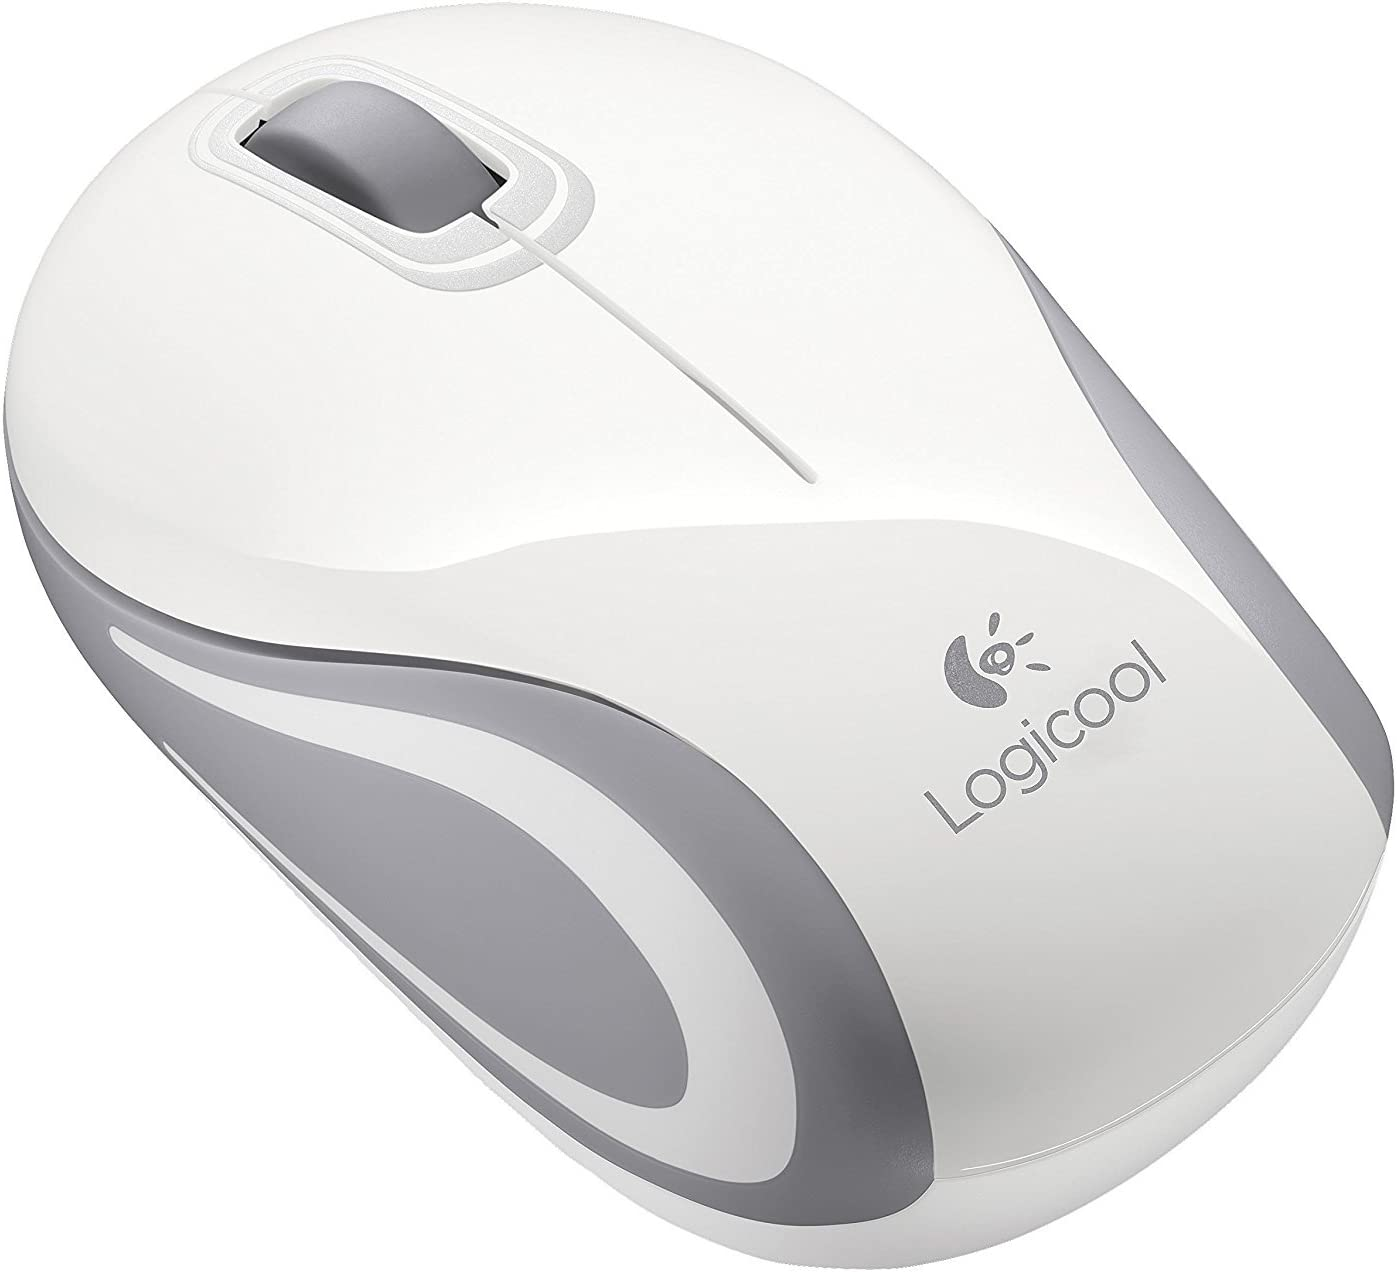 Logitech M187R Wireless 3 Button Gaming Optical Mouse Scroll DPI For PC Laptop